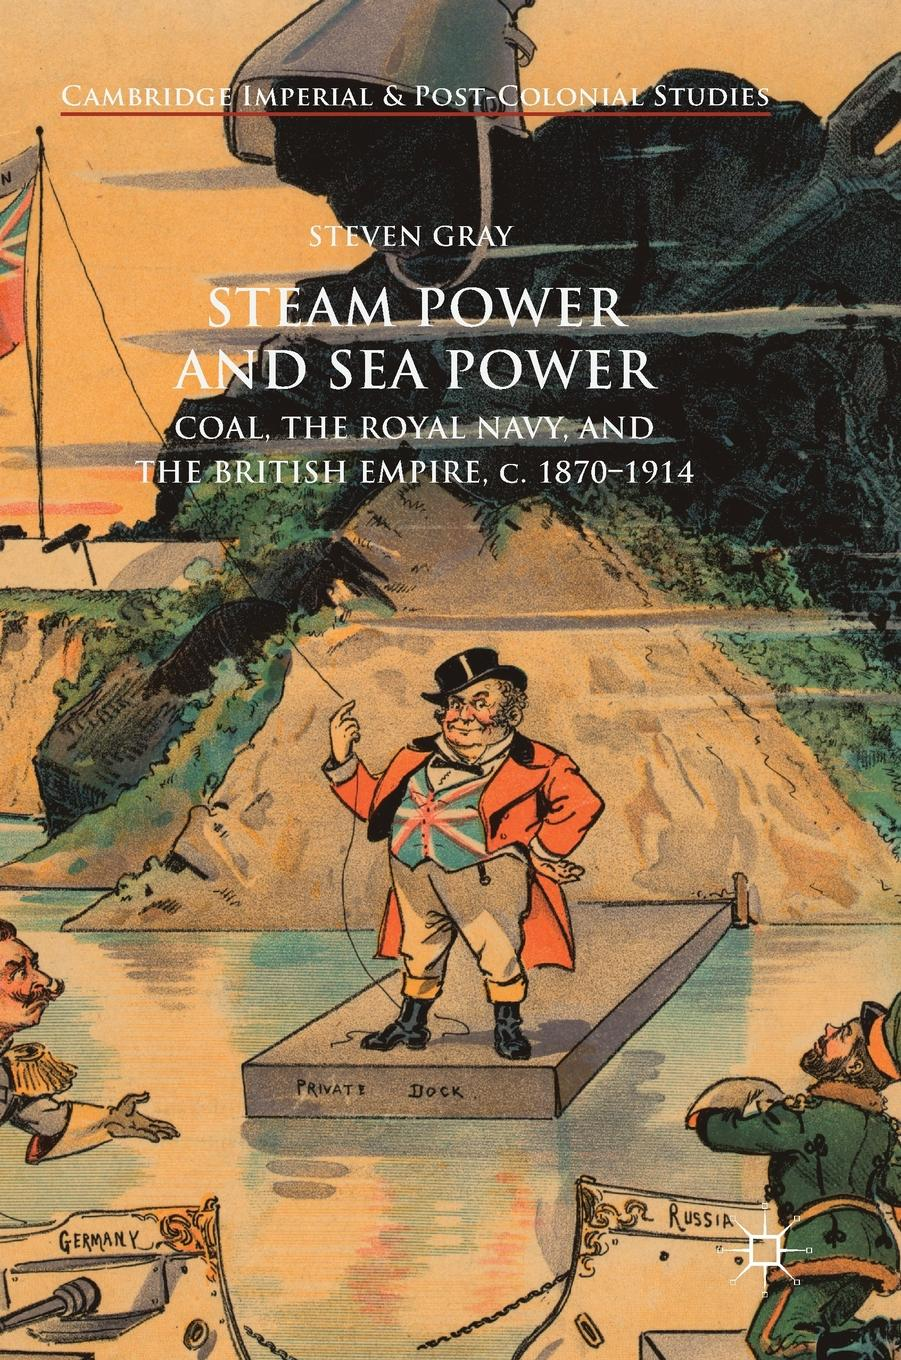 Cambridge Imperial and Post-Colonial Studies: Steam Power and Sea Power: Coal, the Royal Navy, and the British Empire,... by Steven Gray